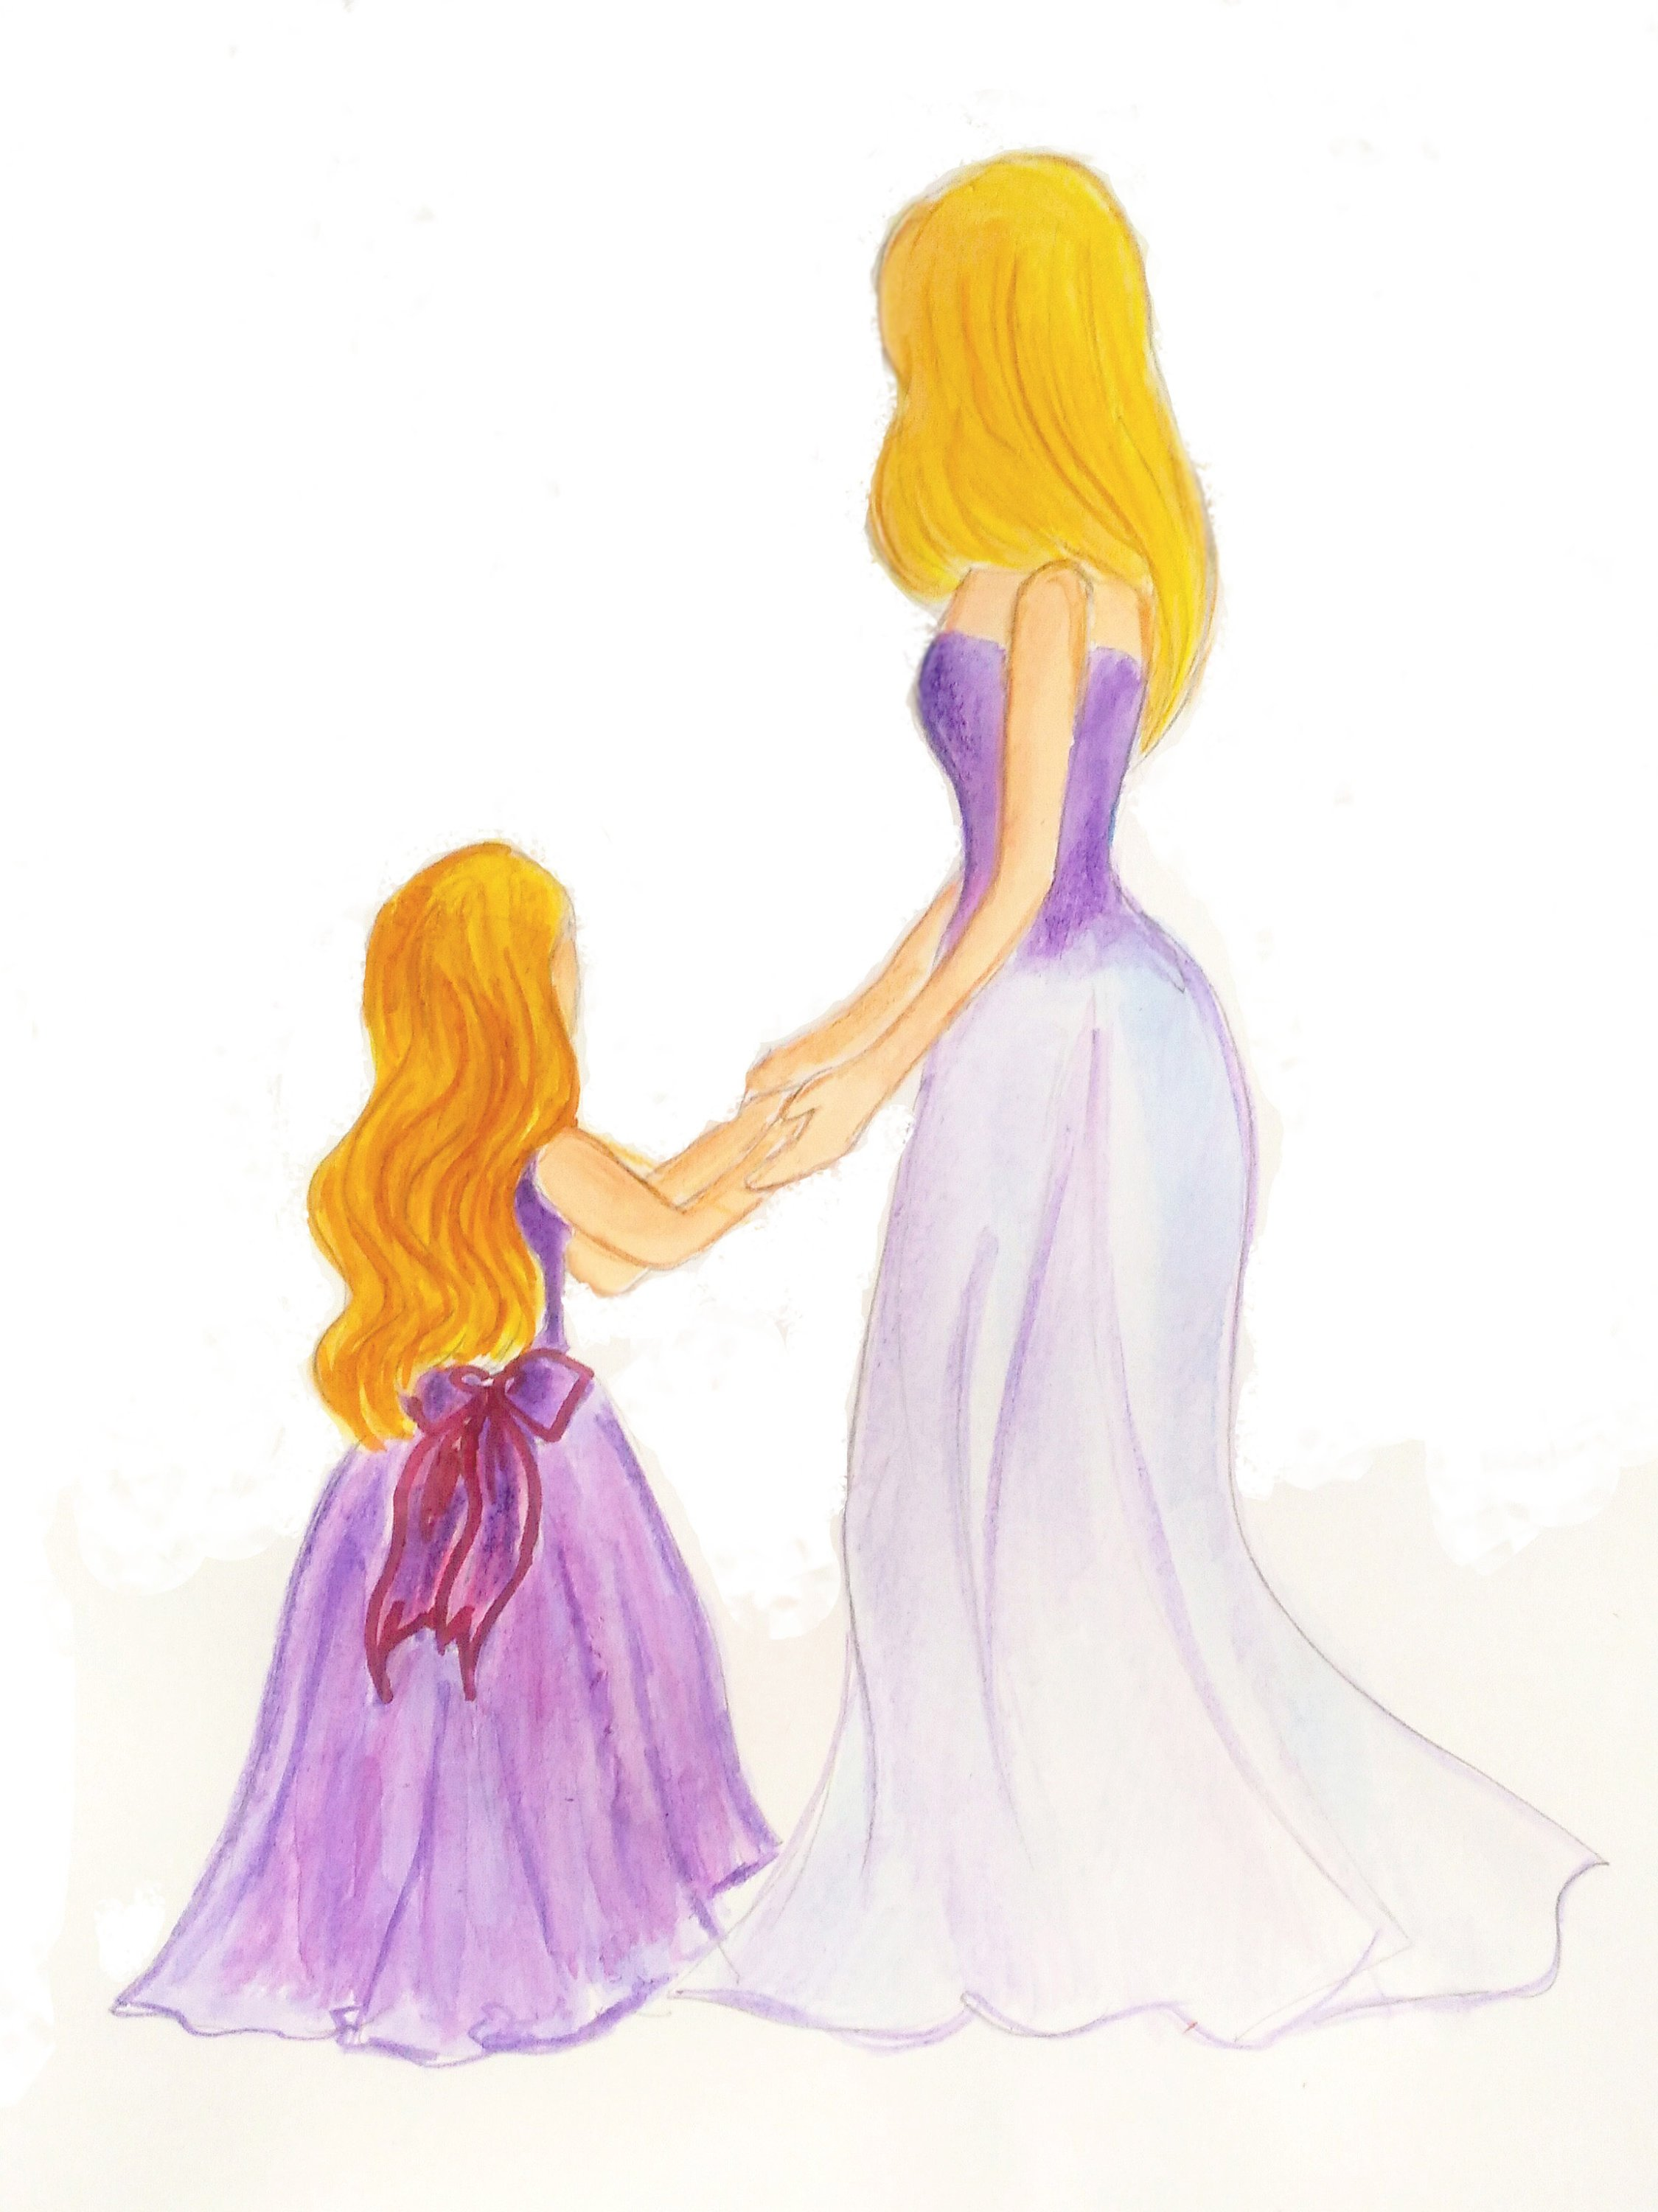 2249x3000 mother daughter artmother daugther portraitmother daughter etsy